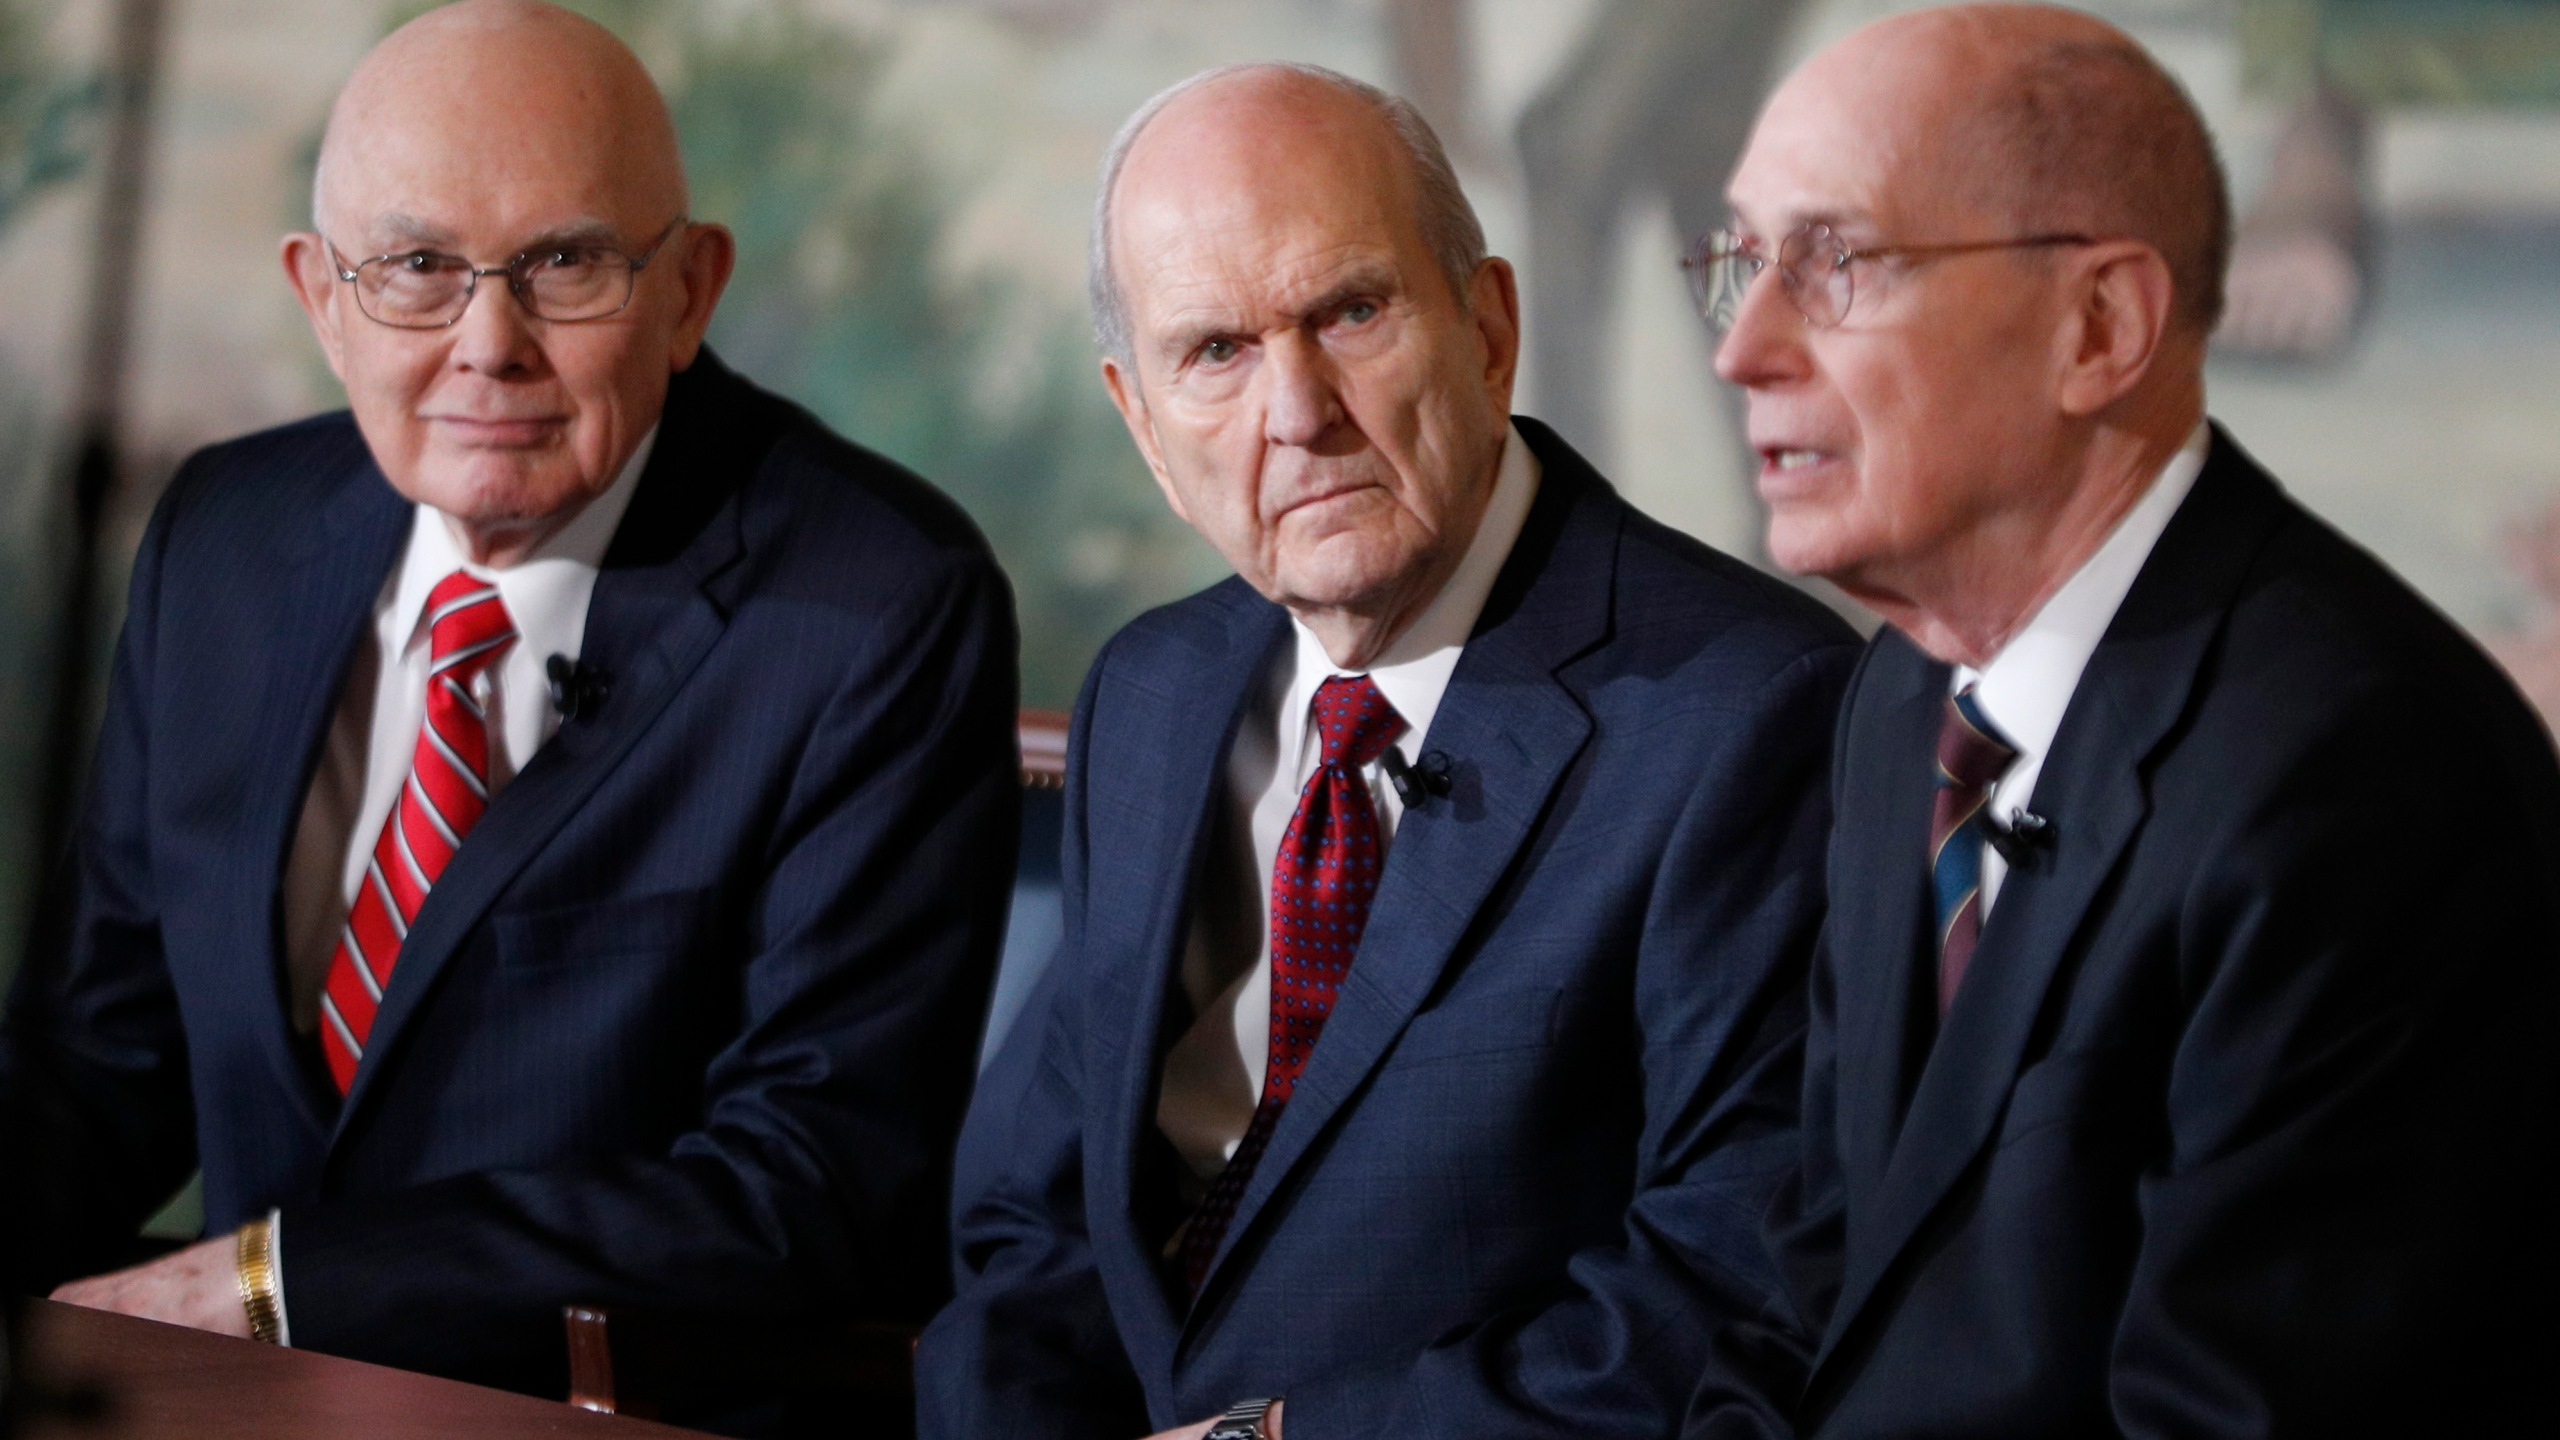 Russell M. Nelson, center, Dallin H. Oaks, left, and Henry B. Eyring, right, answer question from the press after Nelson was announced as the 17th president of the Mormon Church on Jan.16, 2017 in Salt Lake City, Utah. (Credit: George Frey/Getty Images)